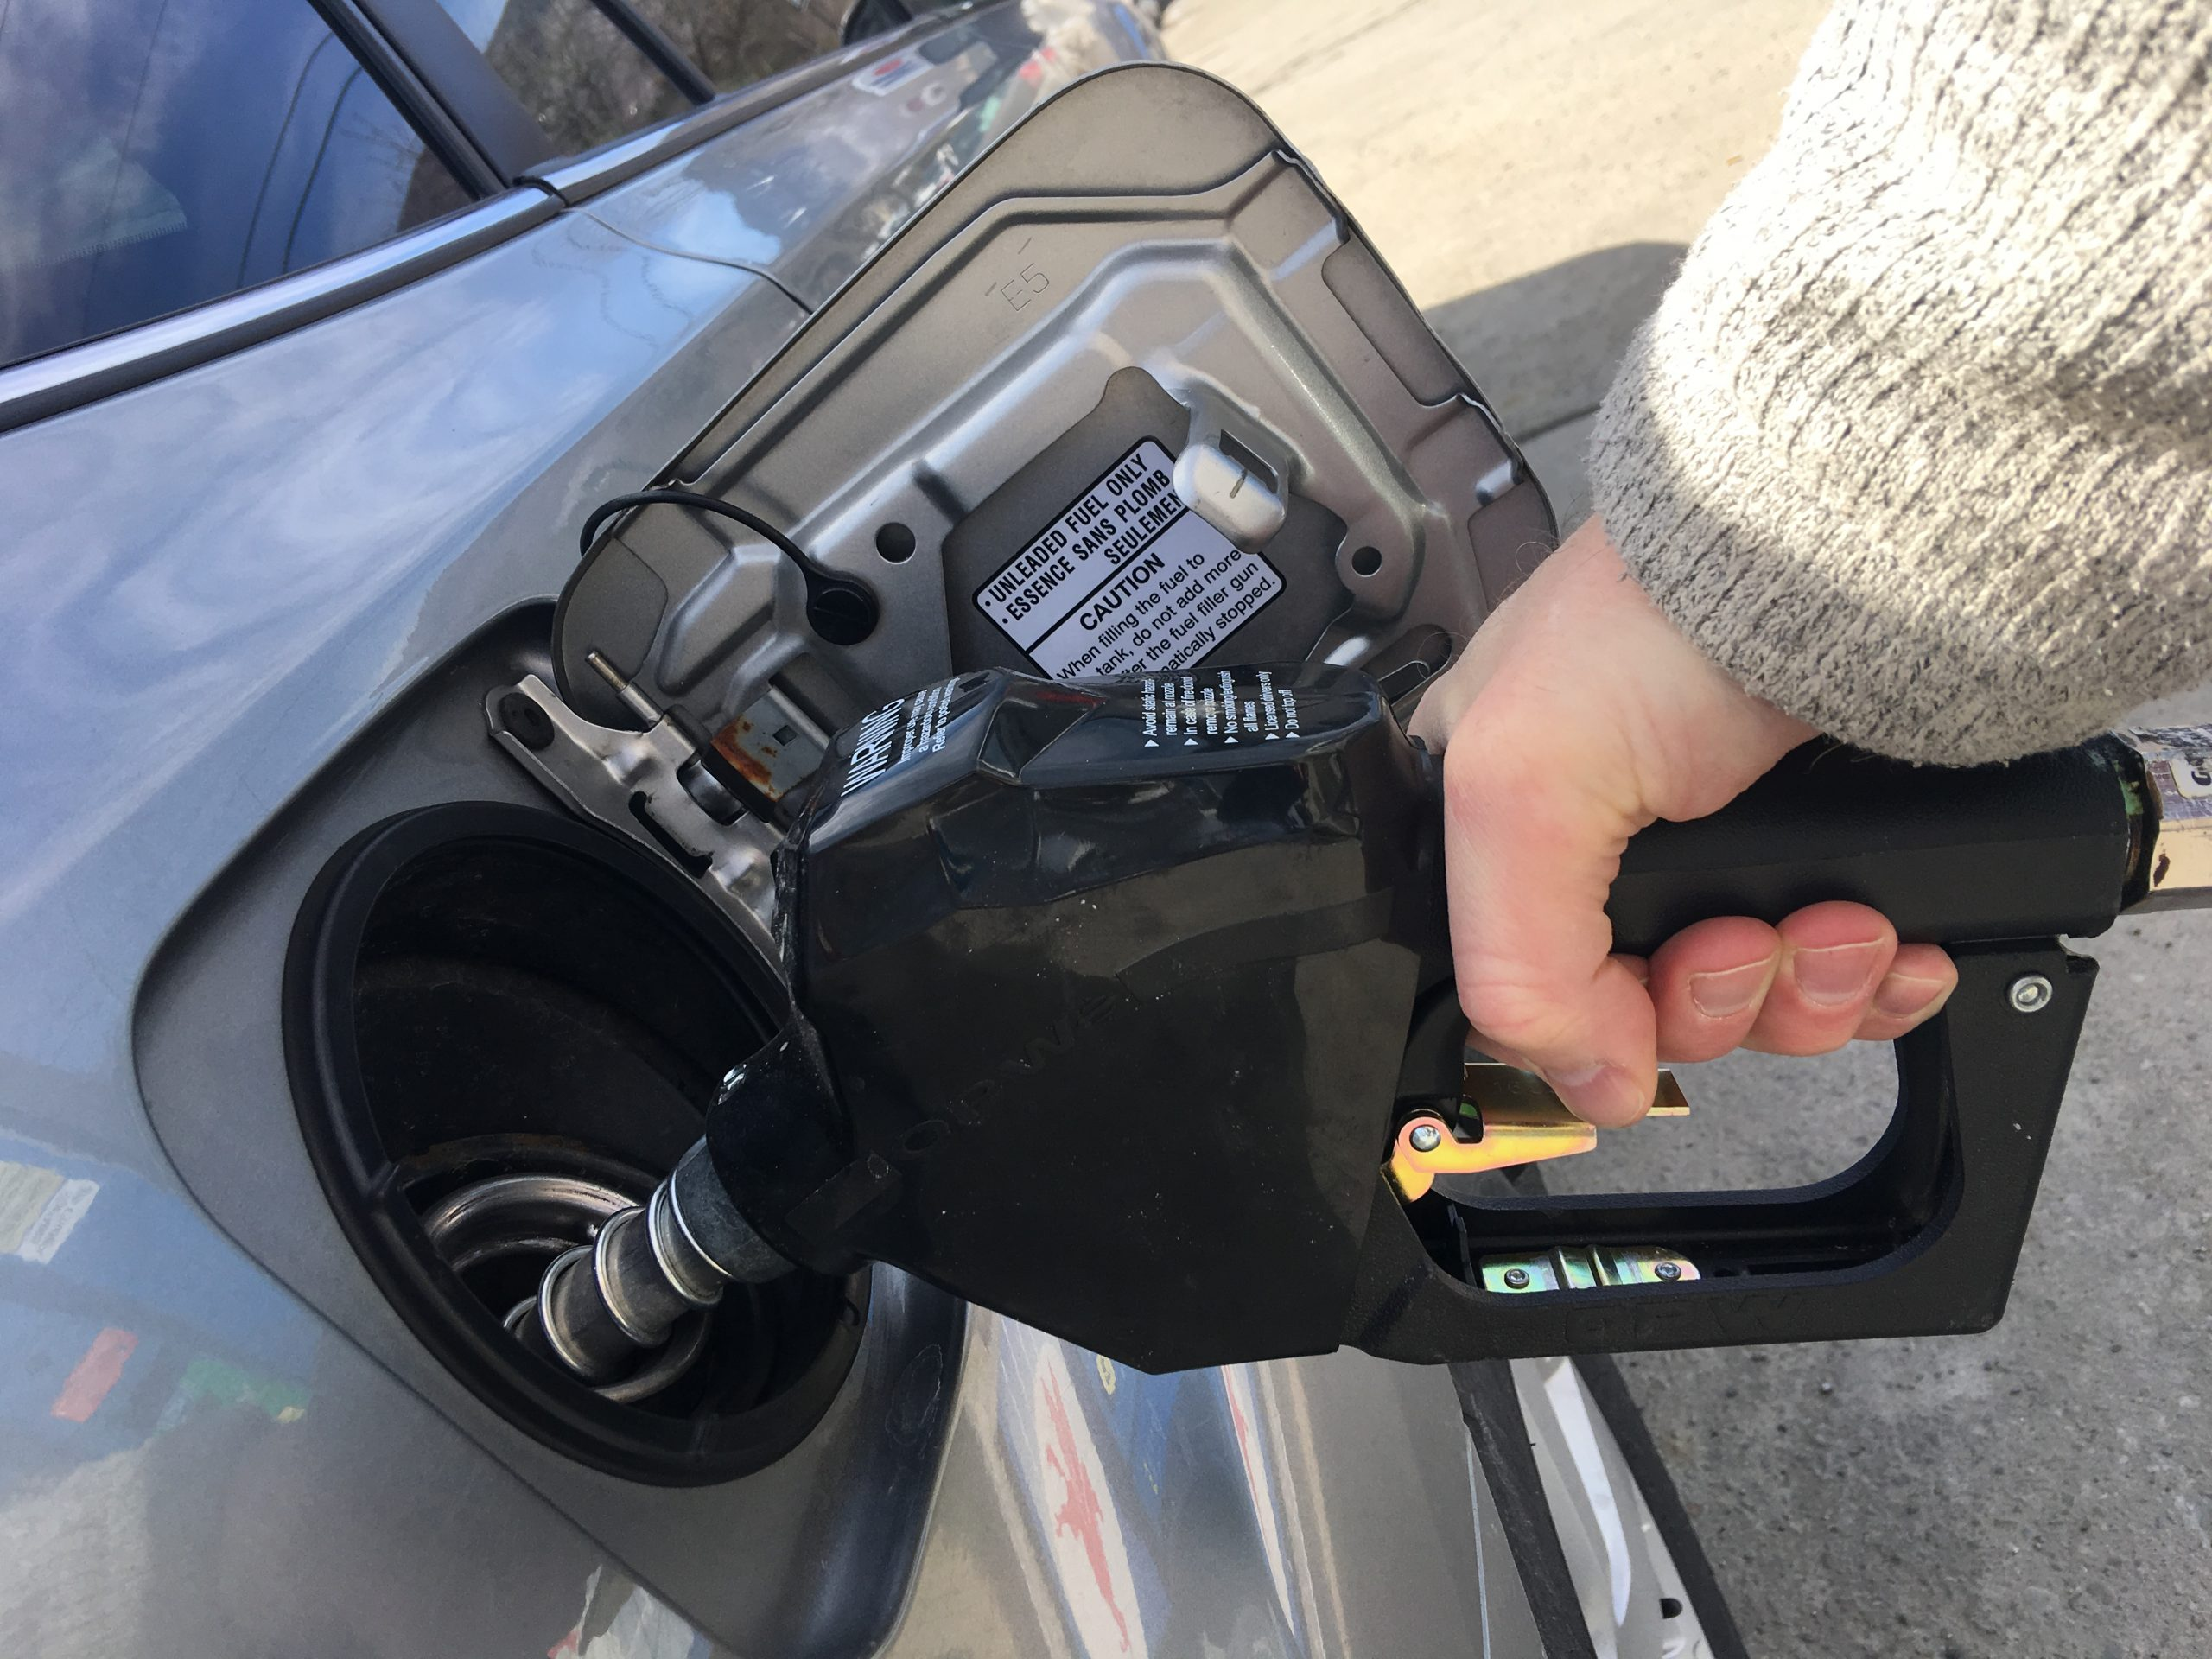 My Car Smells Like Gasoline, What Can I Do (Part 2)